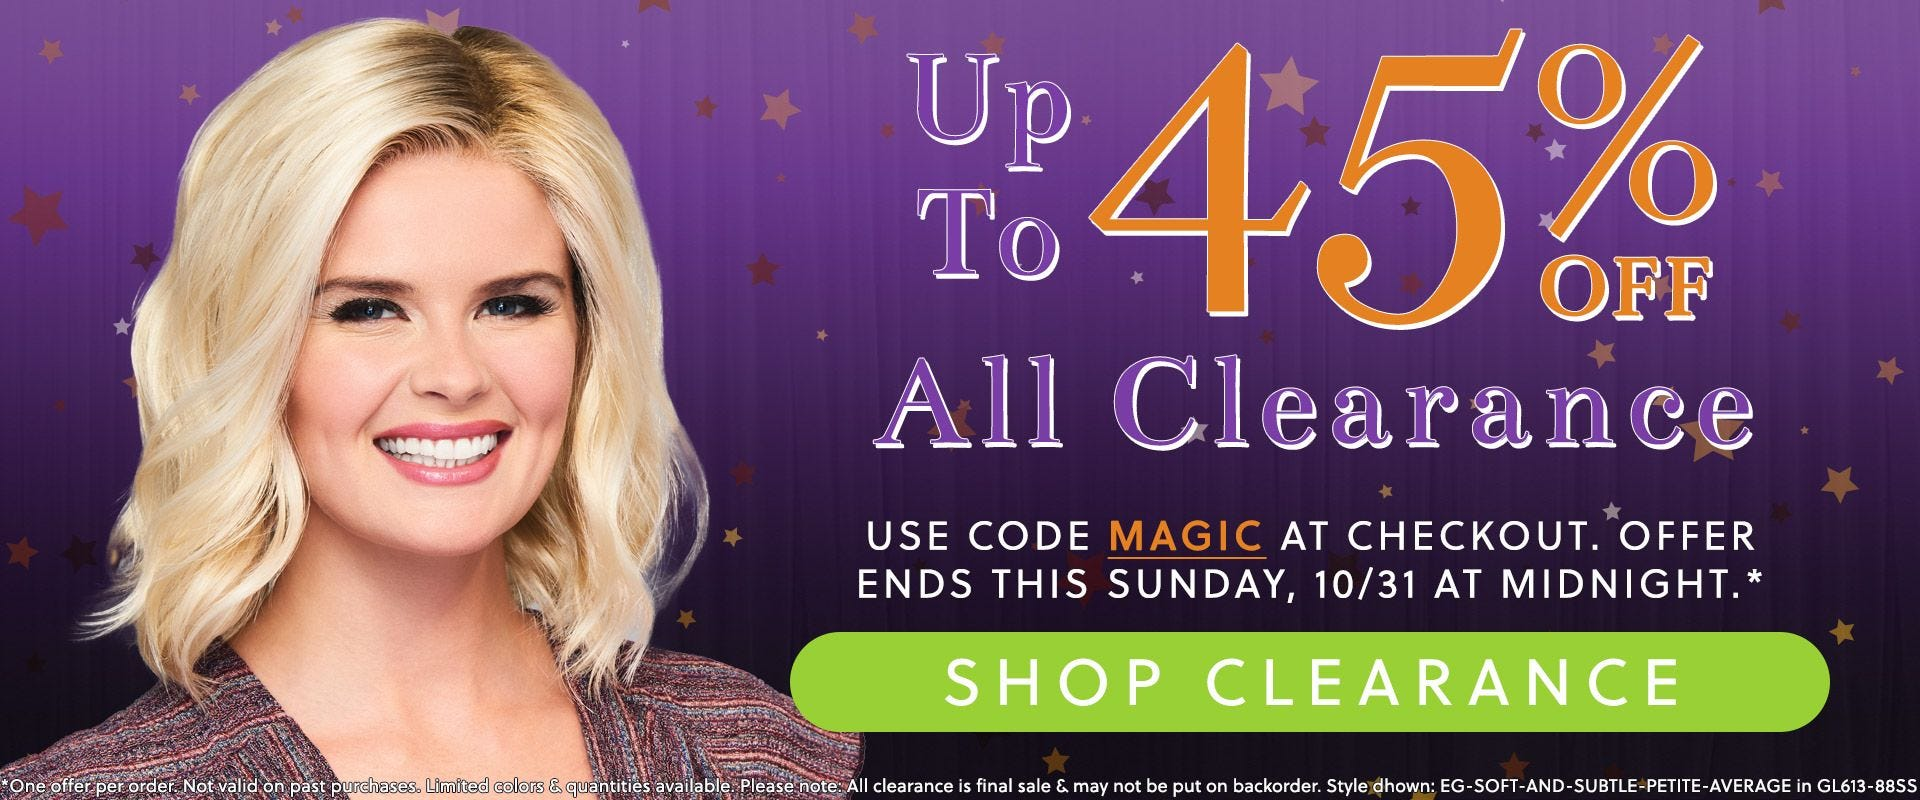 Up To 45% Off Clearance Is Here